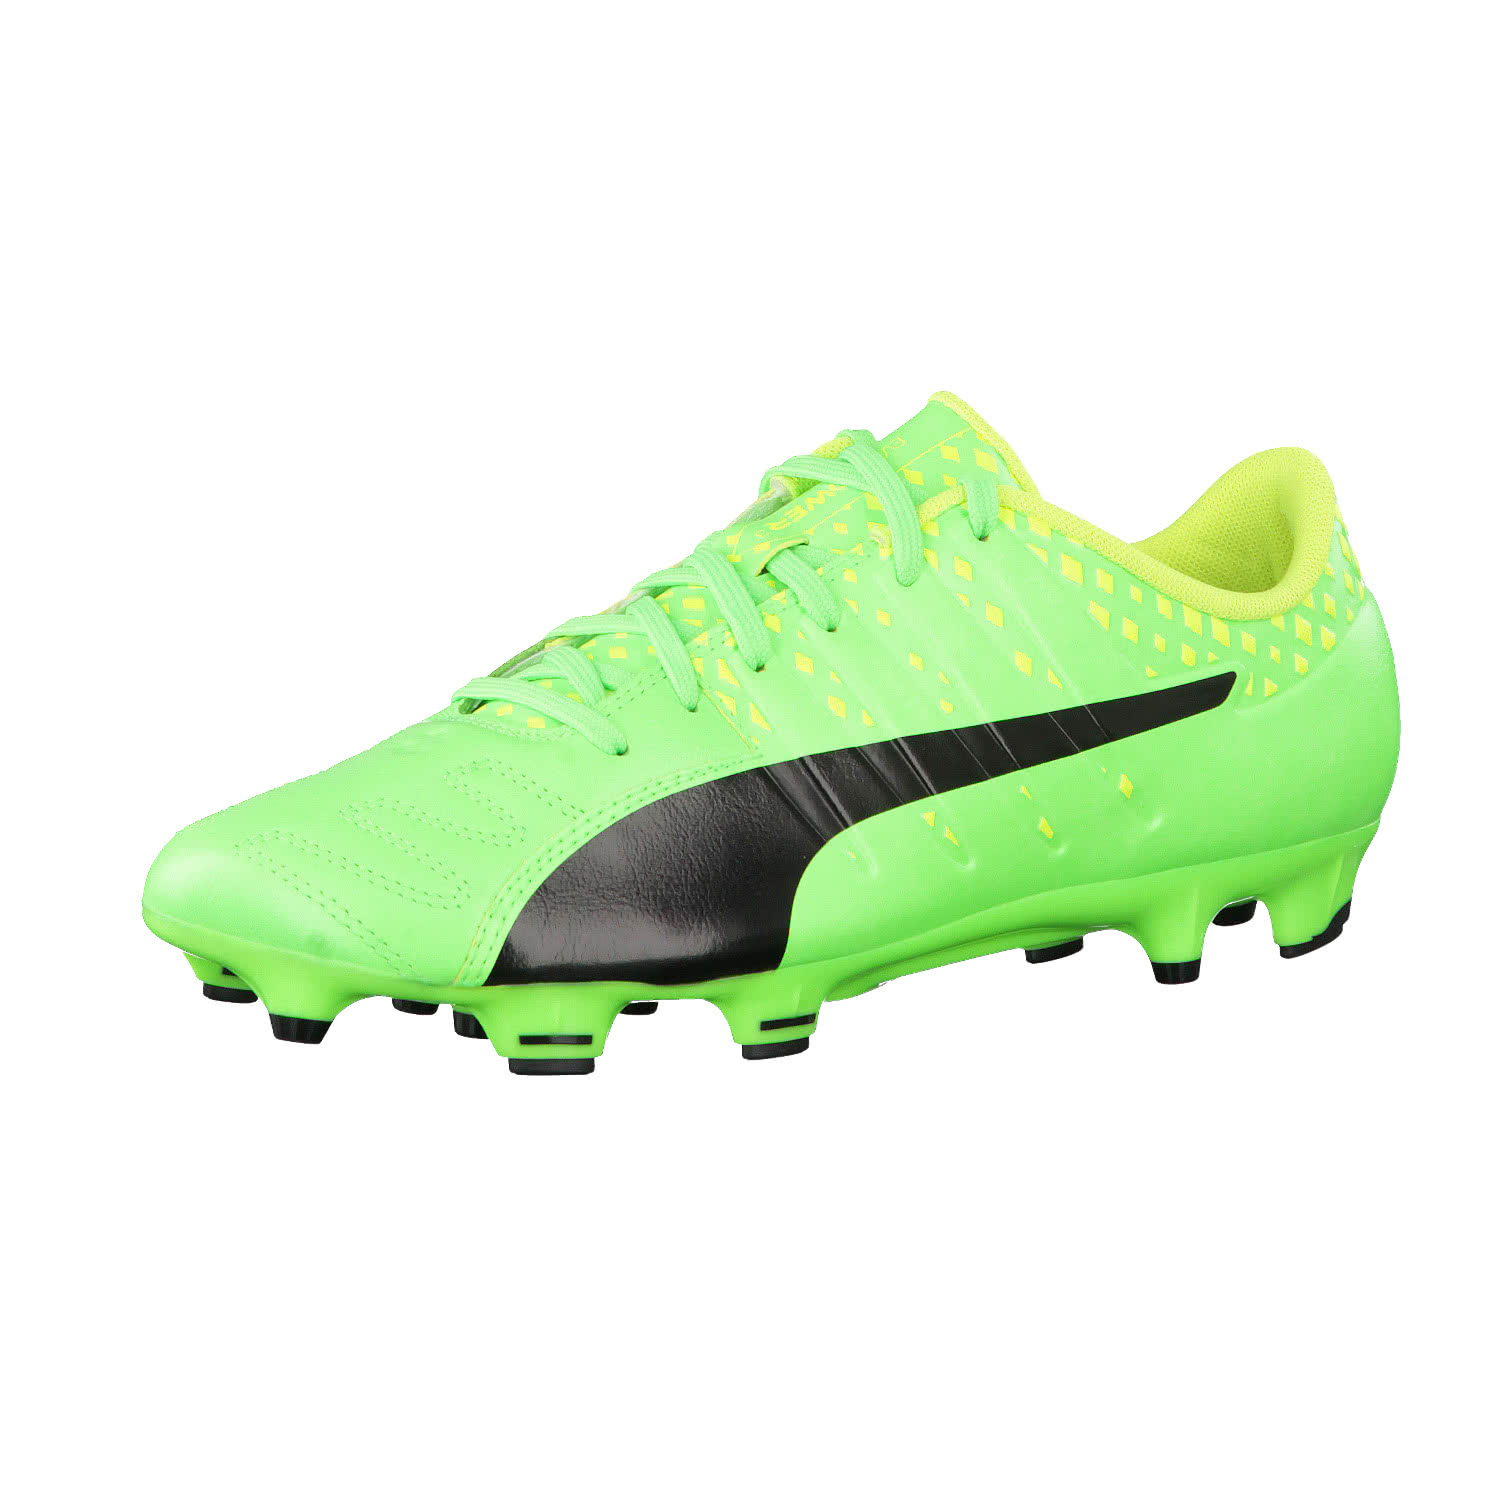 EVOPOWER VIGOR 3 FG - Fußballschuh Nocken - green gecko/black/safety yellow